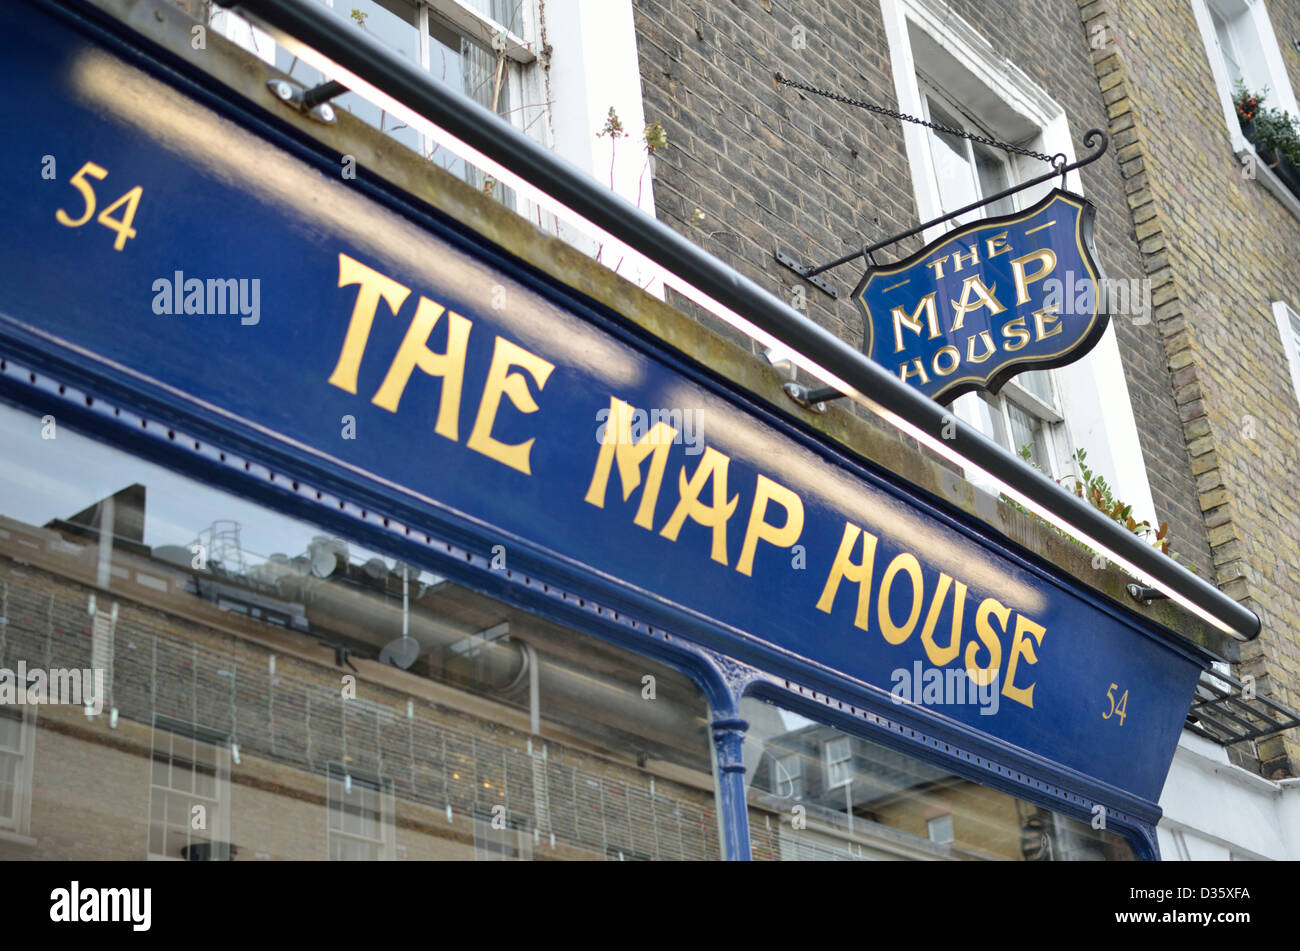 The Map Shop London.The Map House Antique Map Shop In Beauchamp Place Knightsbridge